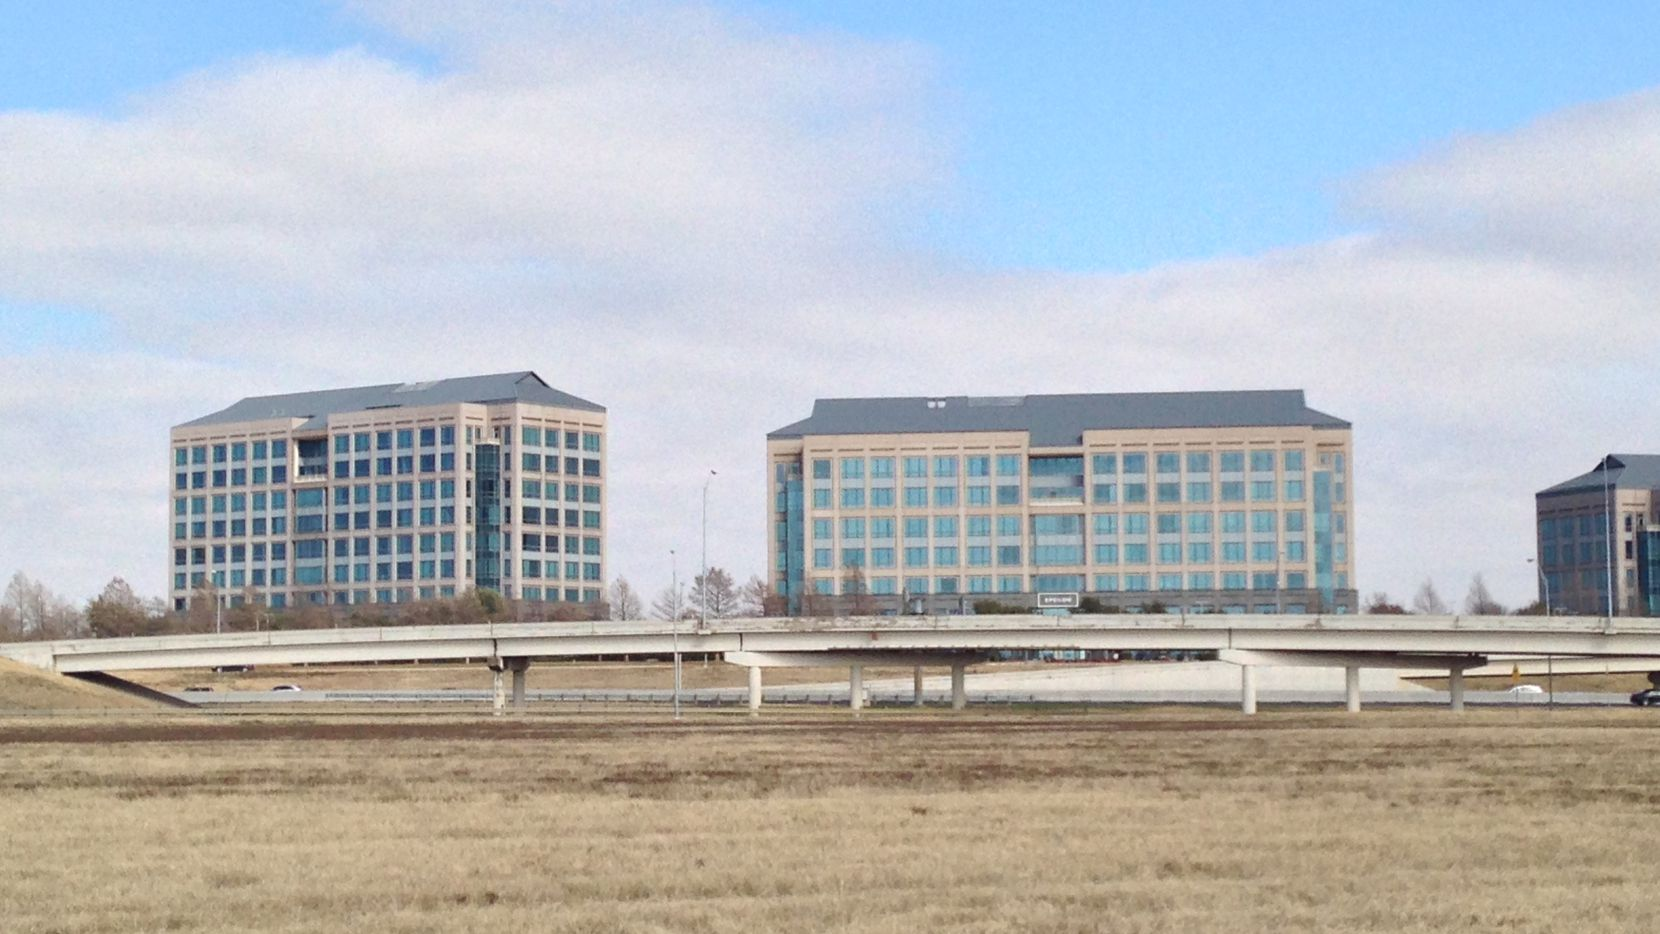 The almost 28-acre development site is on State Highway 114 in Las Colinas.